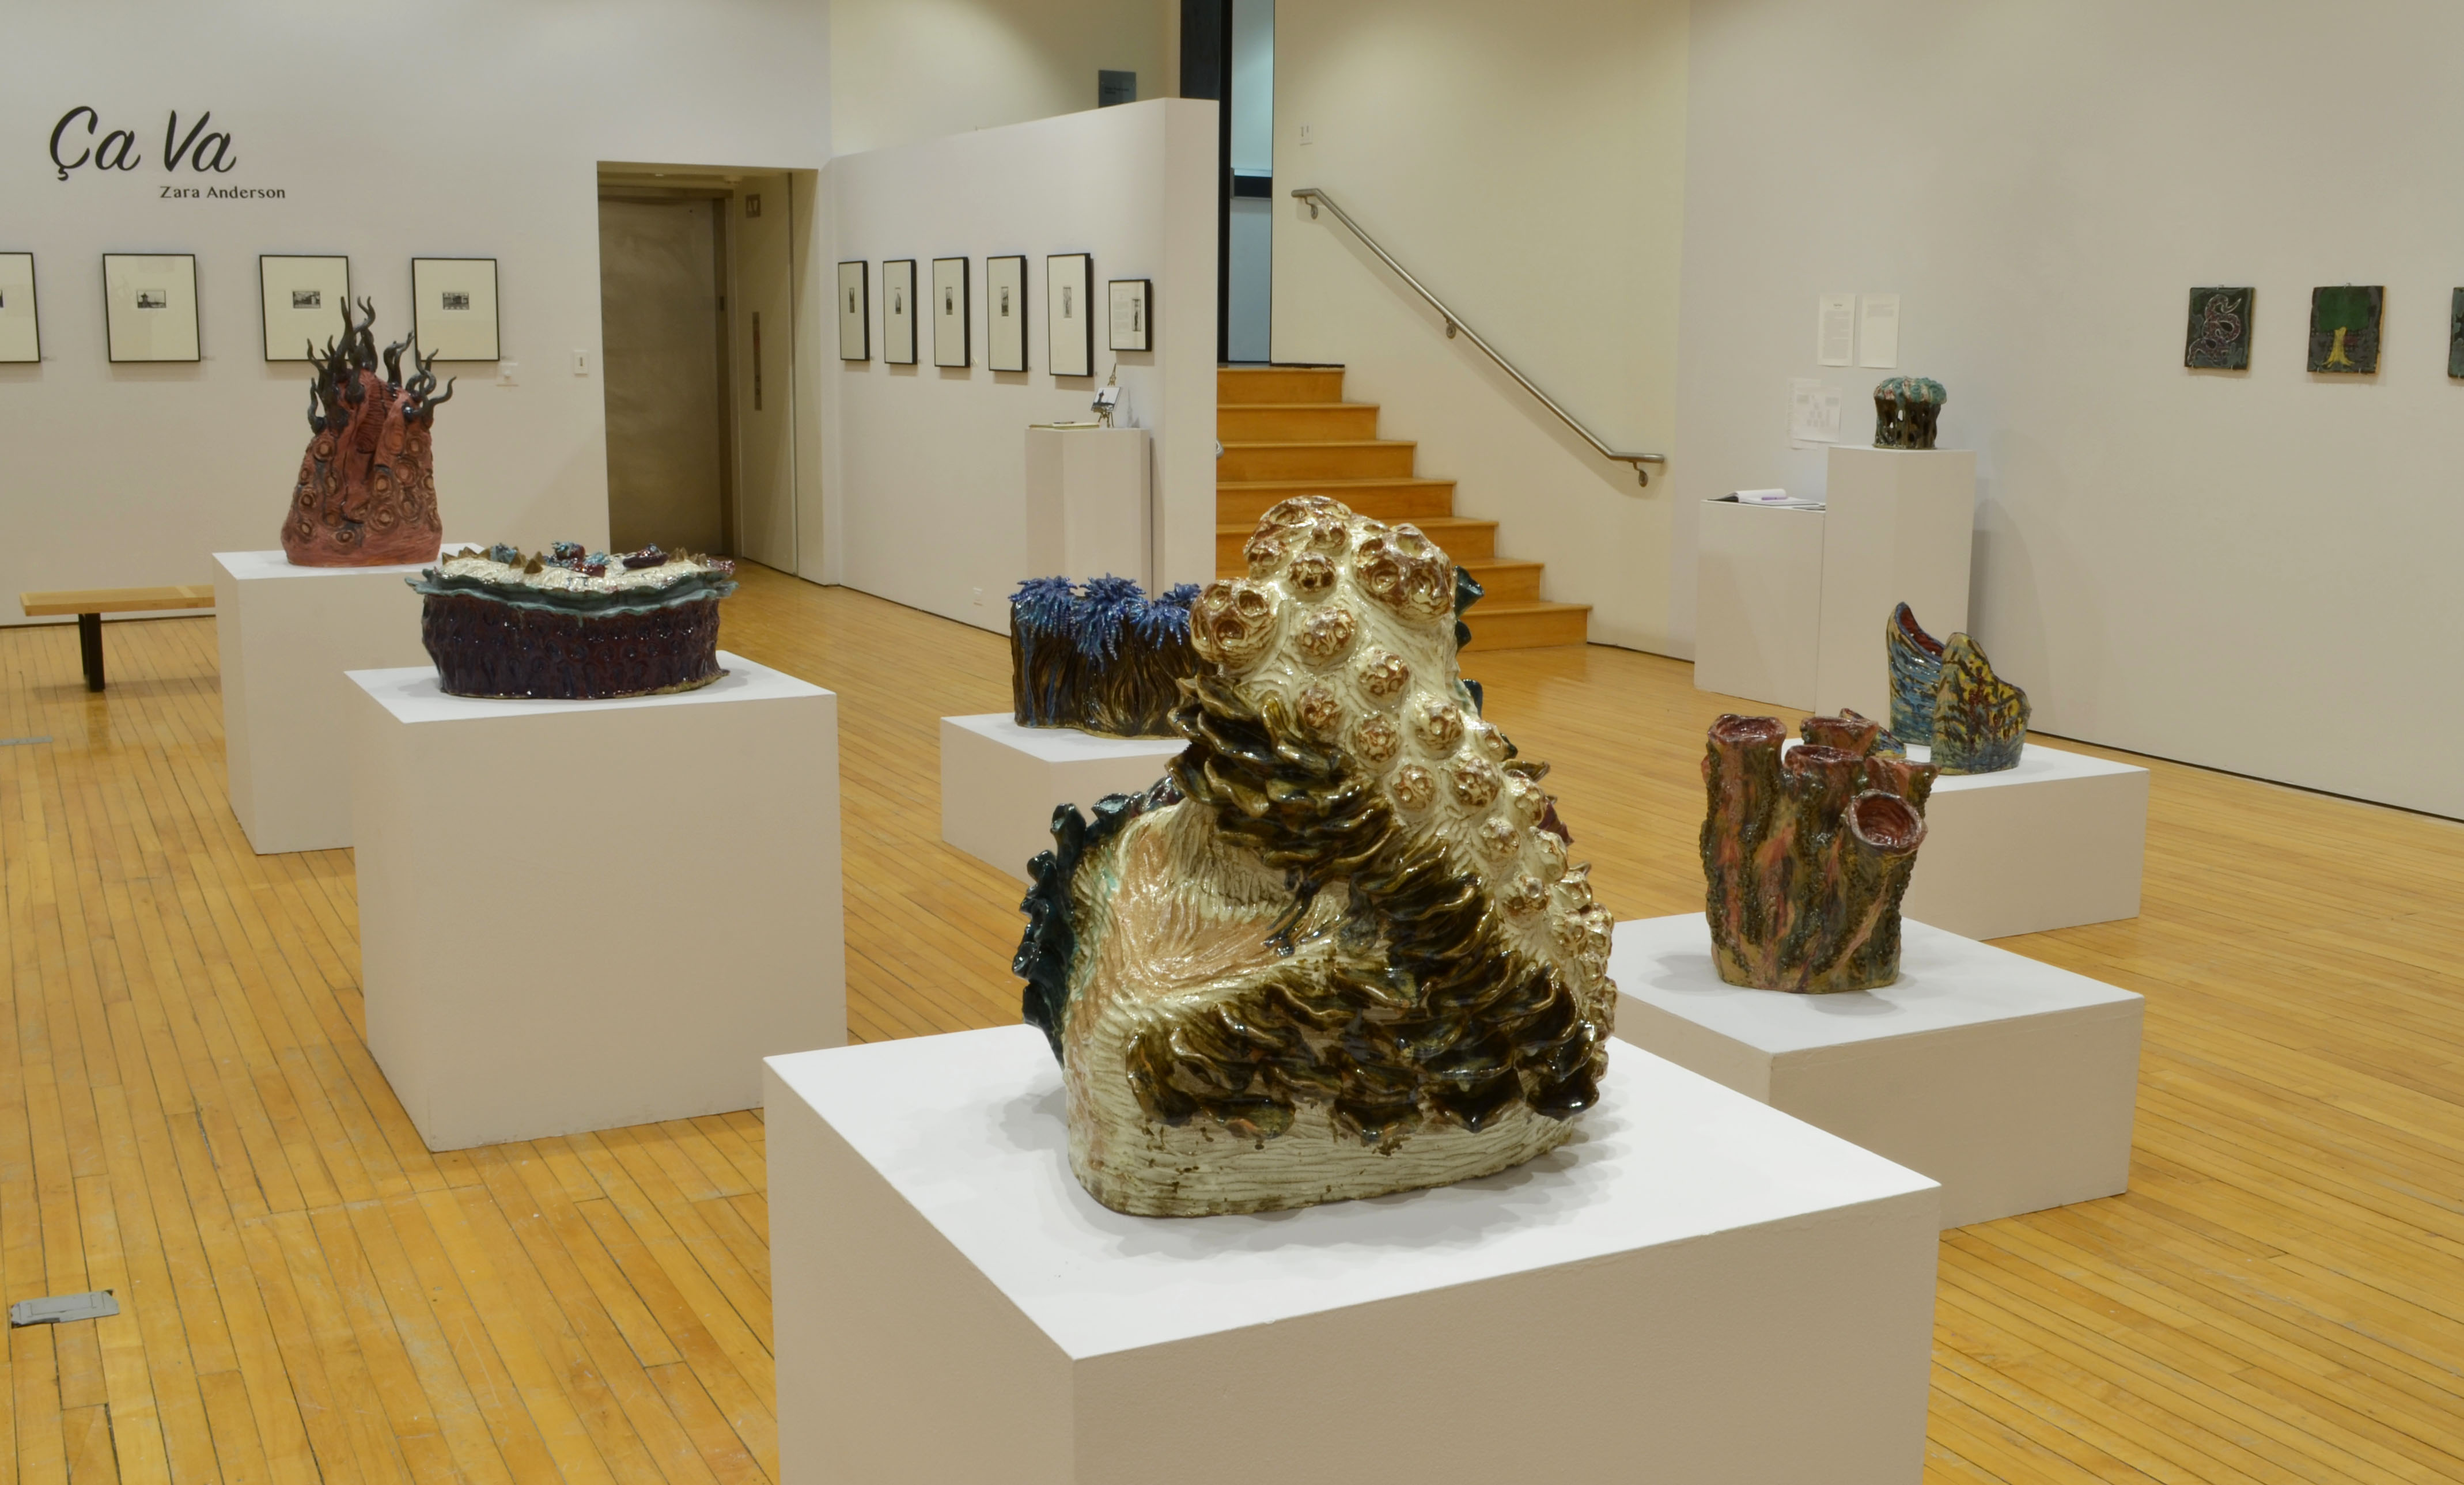 Installation shot of the gallery as a whole.